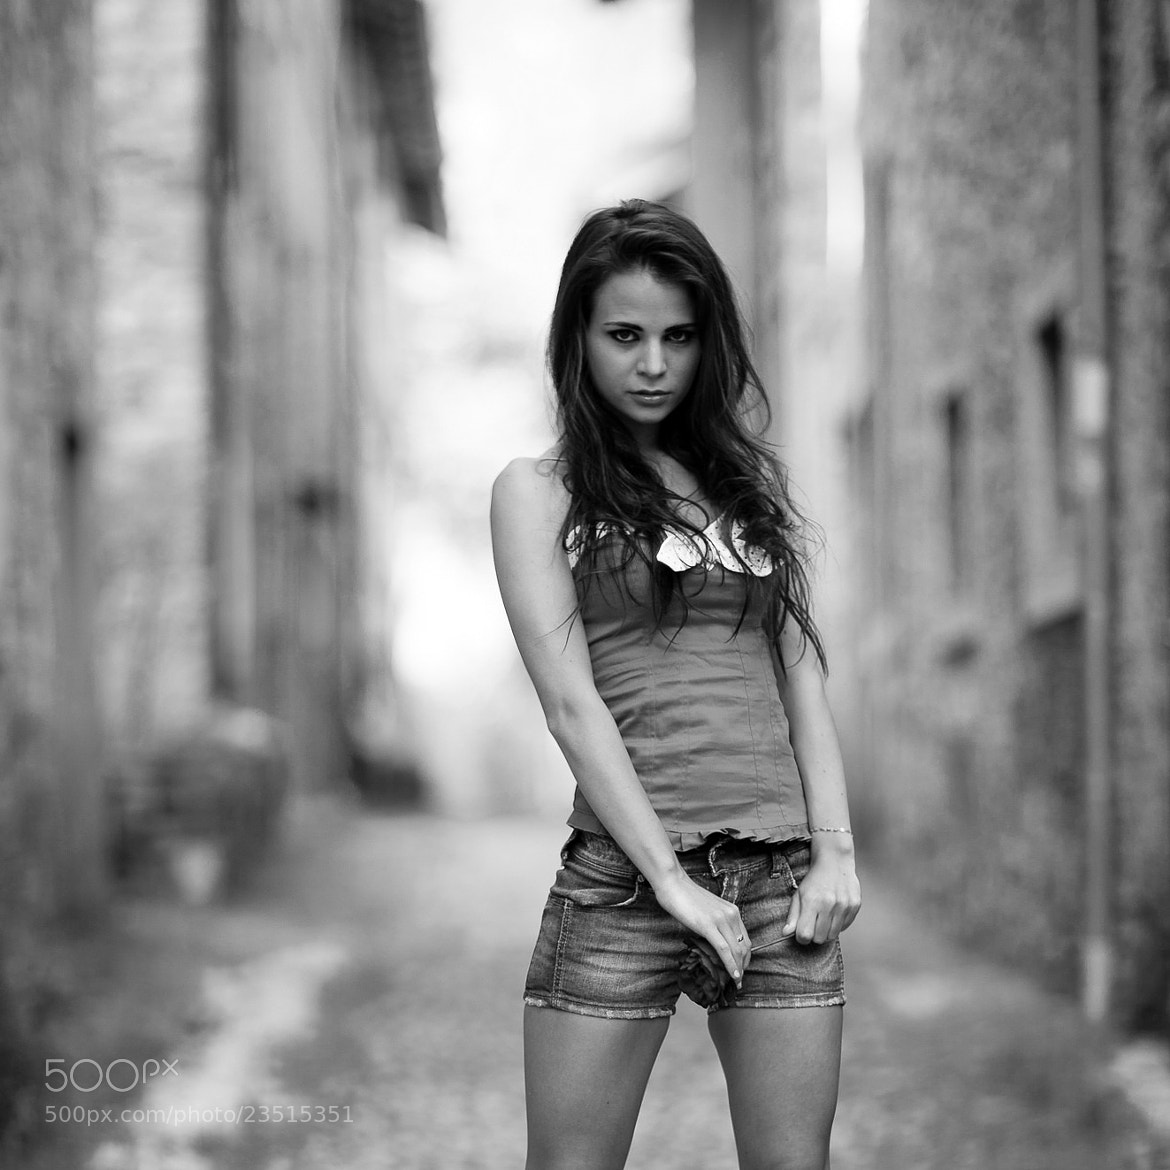 Photograph Bw portrait by Beniamino Gelain on 500px